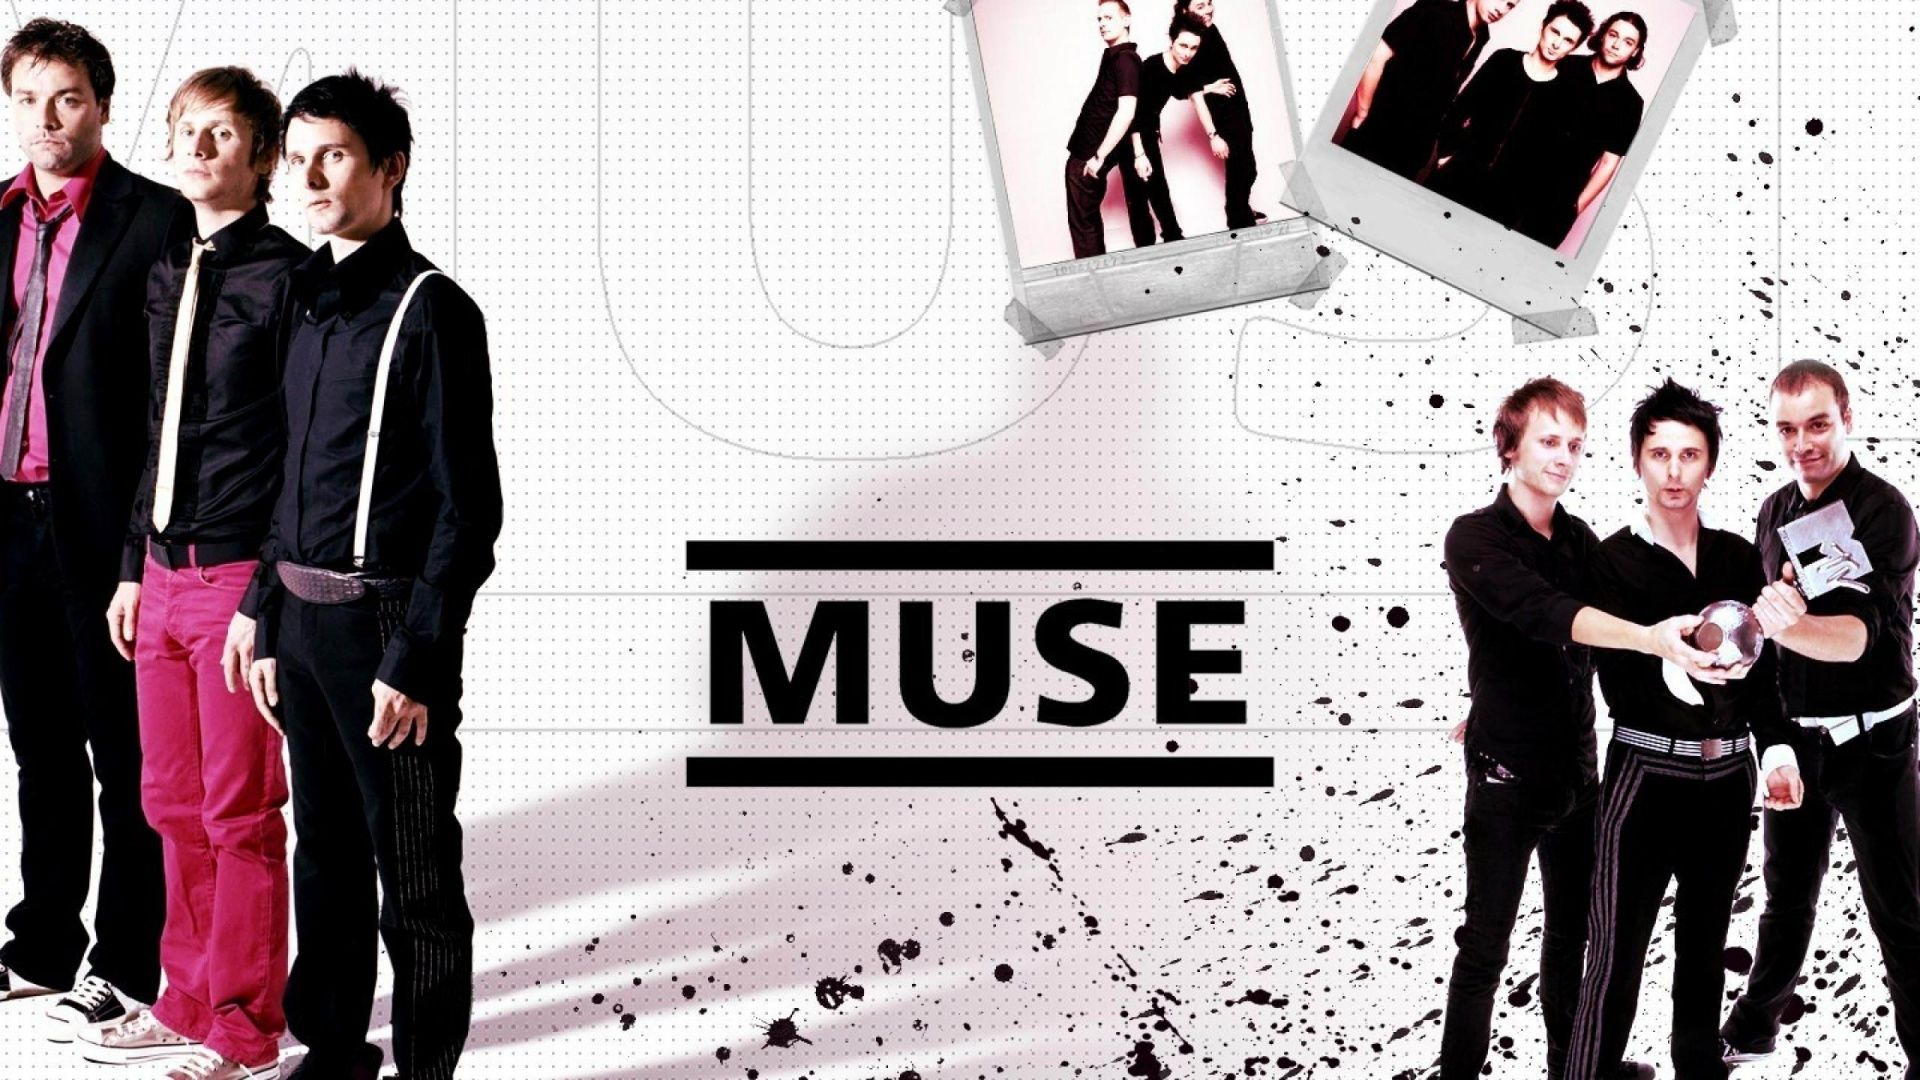 Muse laptop background wallpaper